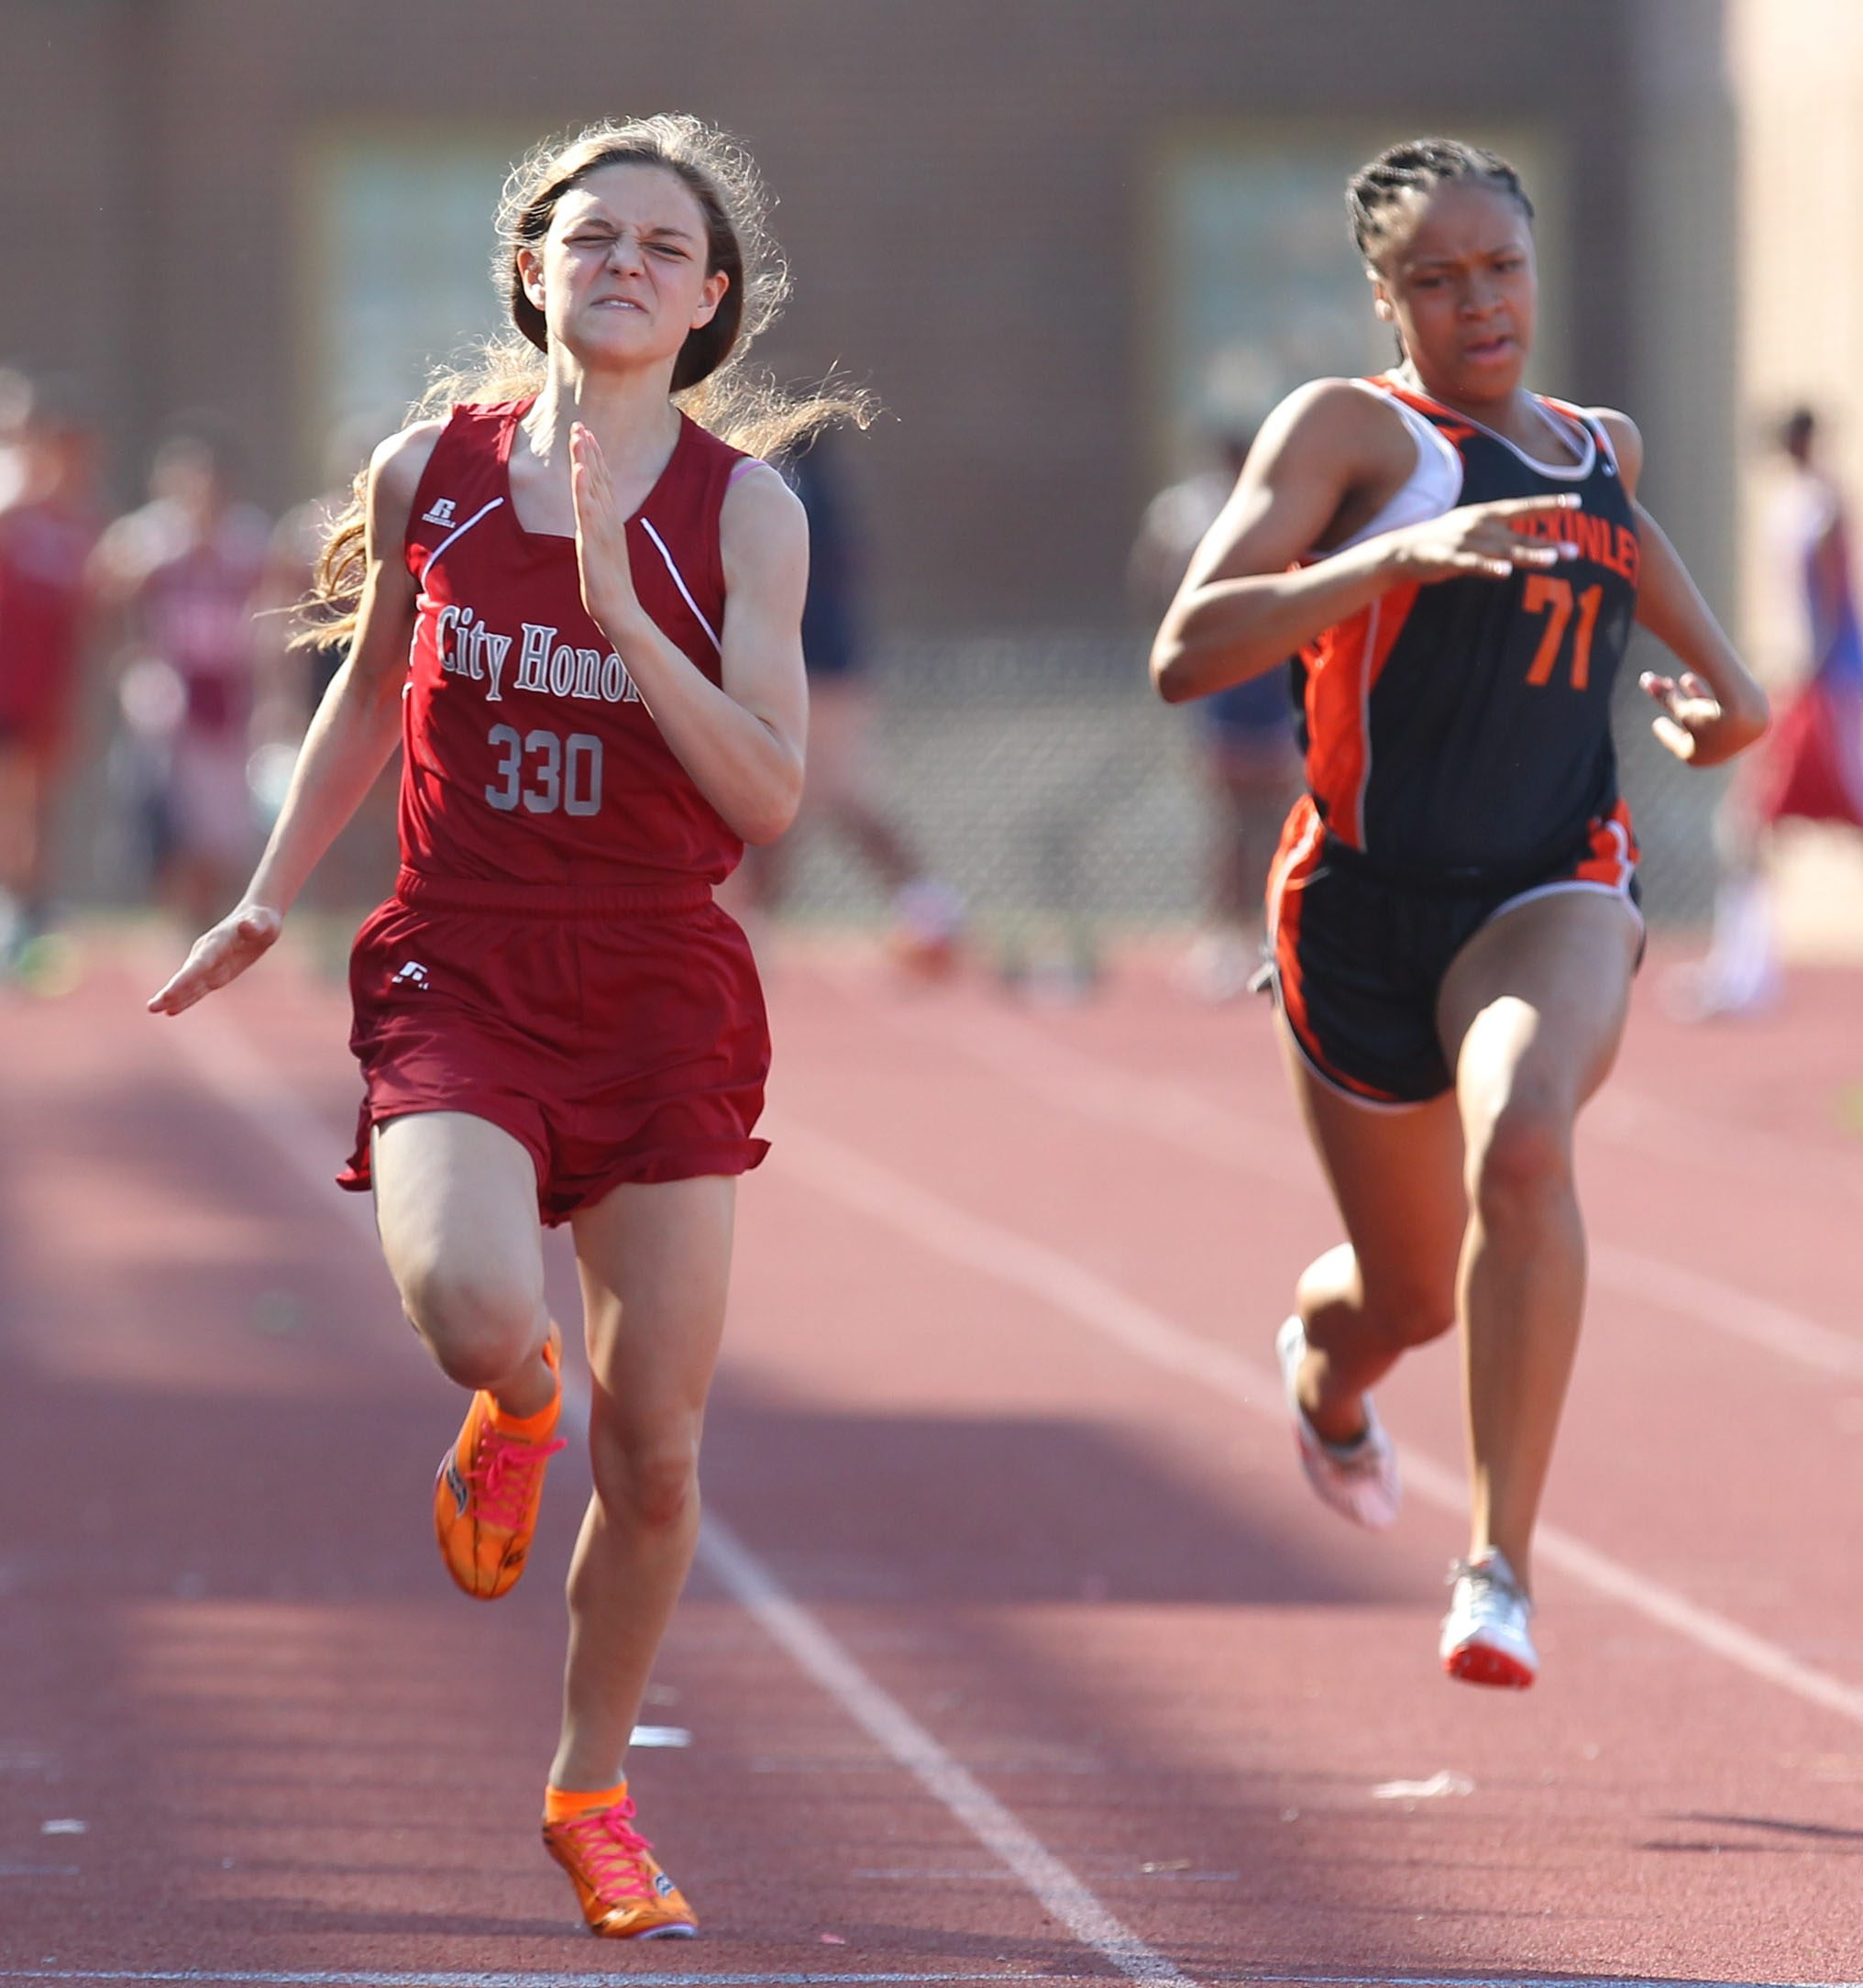 City Honor's Julia Ziaja is among the top 5 in the 100.